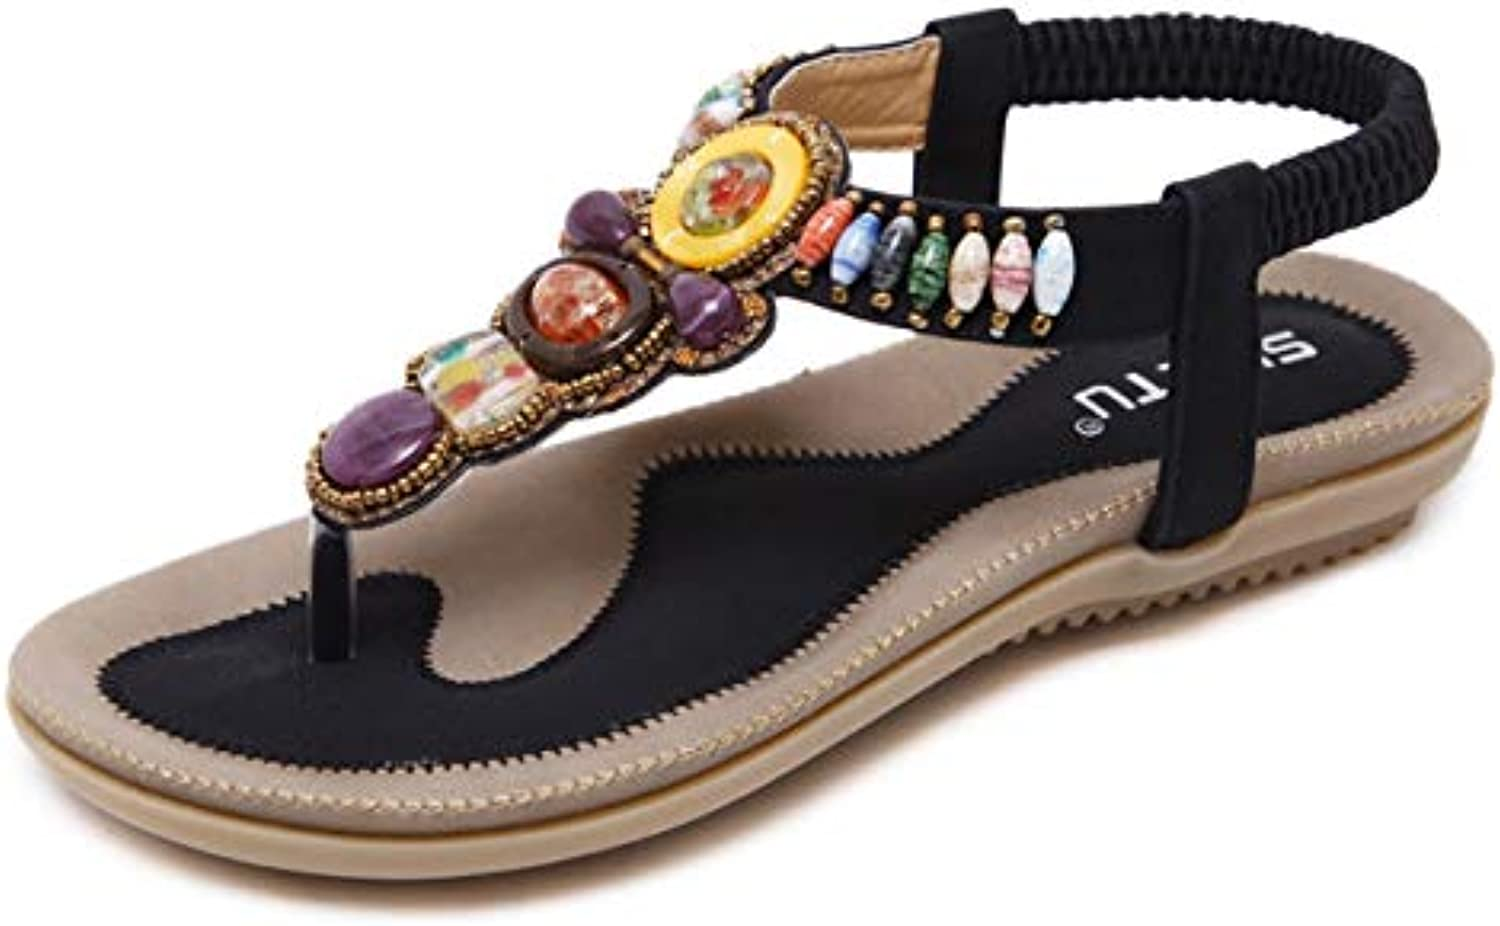 Flat Sandals, Women's Bohemian Beaded Decoration Comfortable Walk Large Size Summer Beach shoes Flip Flops, Suitable for Vacation, Party, Travel, Daily Wear